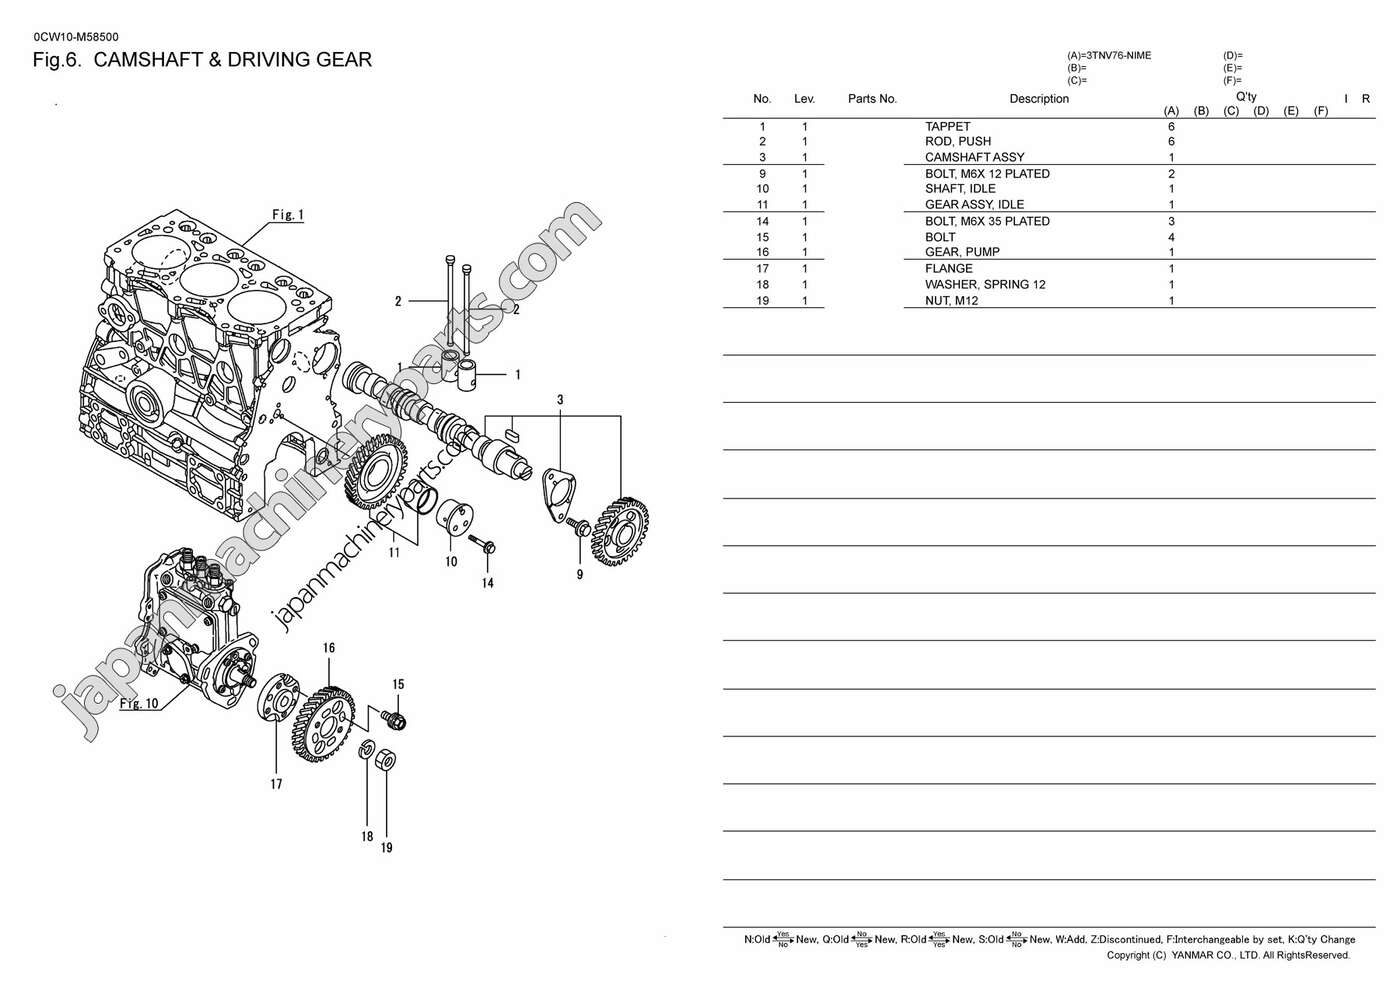 Wiring Diagram For Airman Backhoe